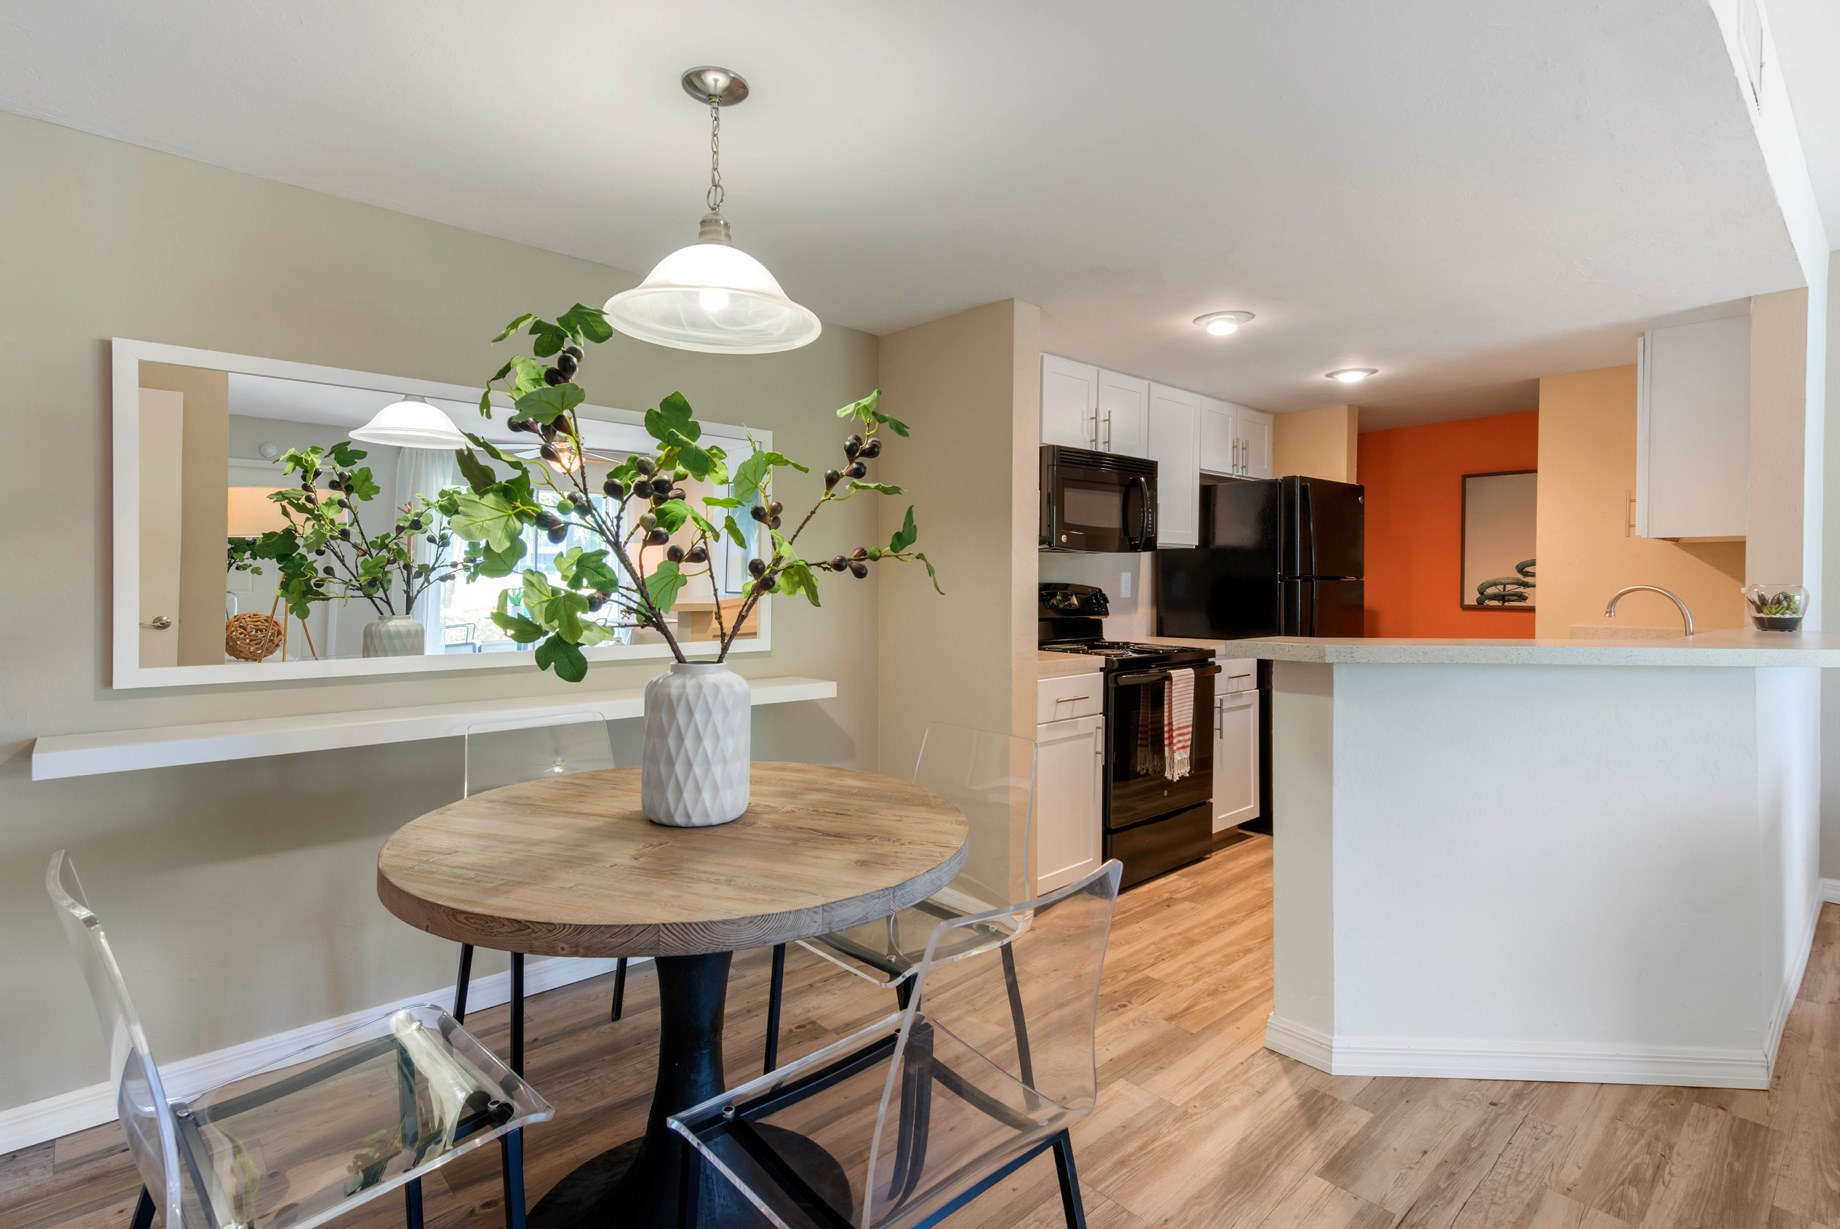 Dining Area and Kitchen at Brantley Pines Apartments in Ft. Myers, FL